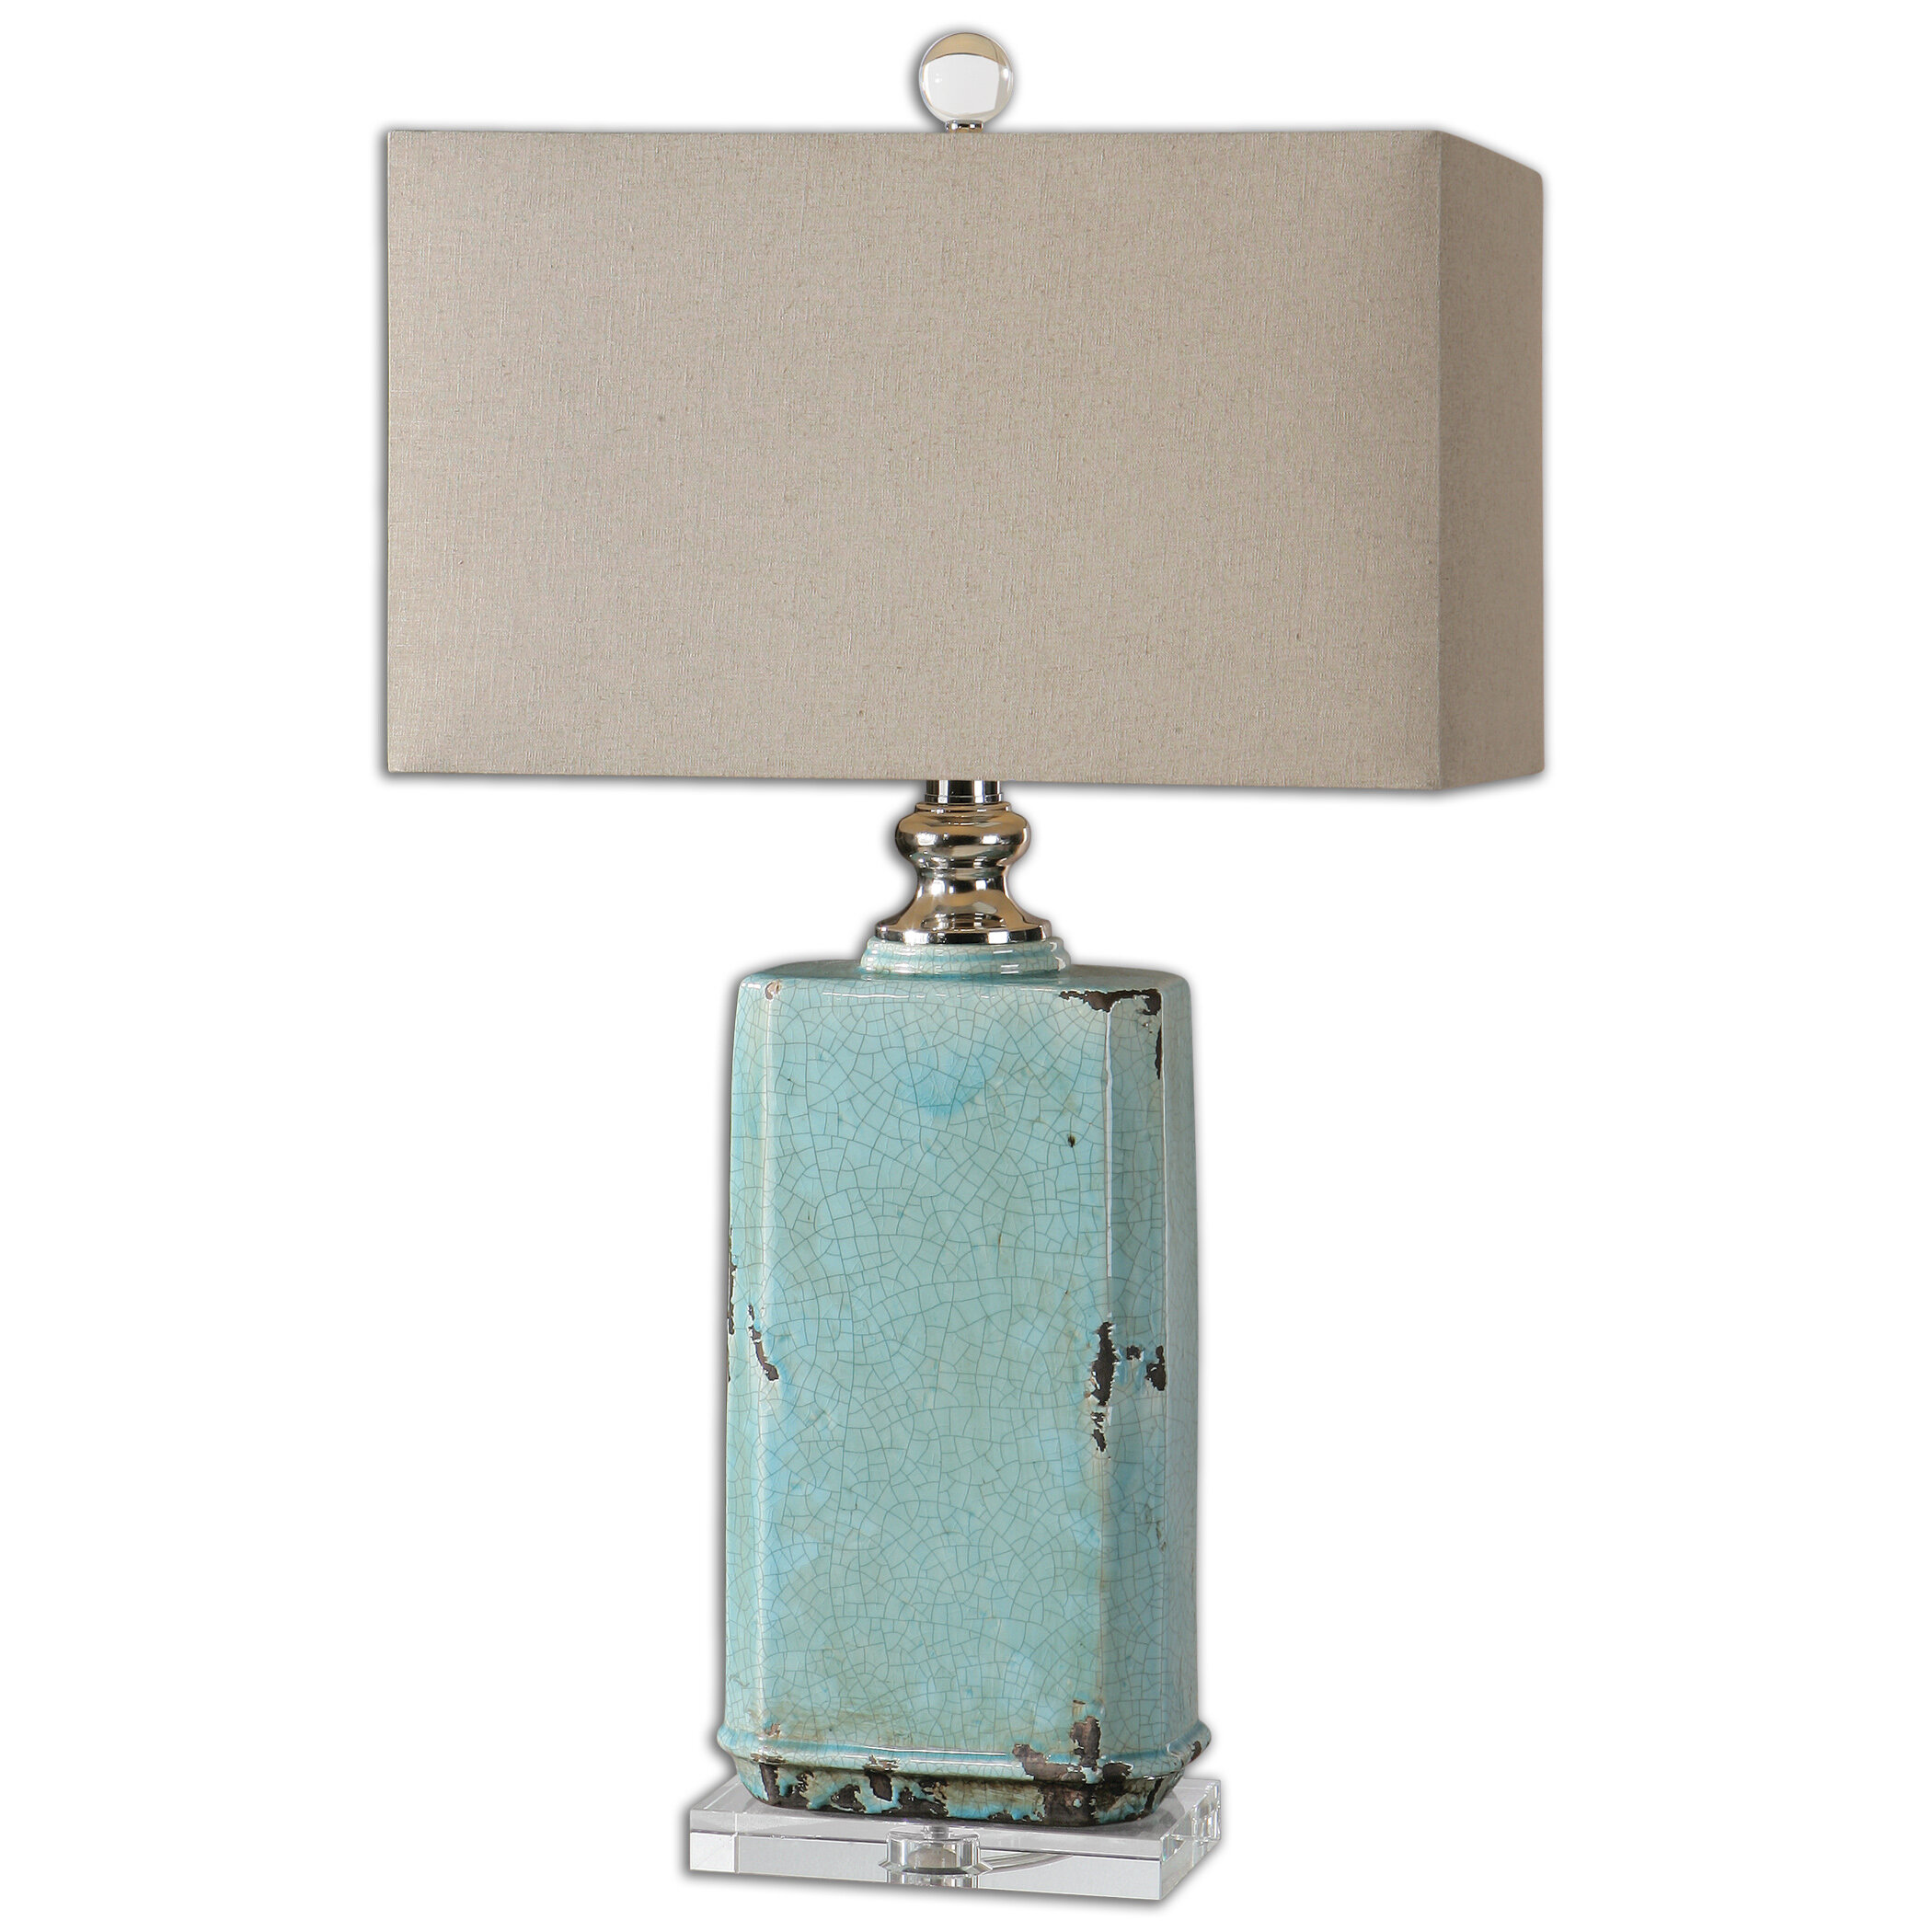 gwg uttermost outlet collections wall sconce products falconara sconces holder metal candle